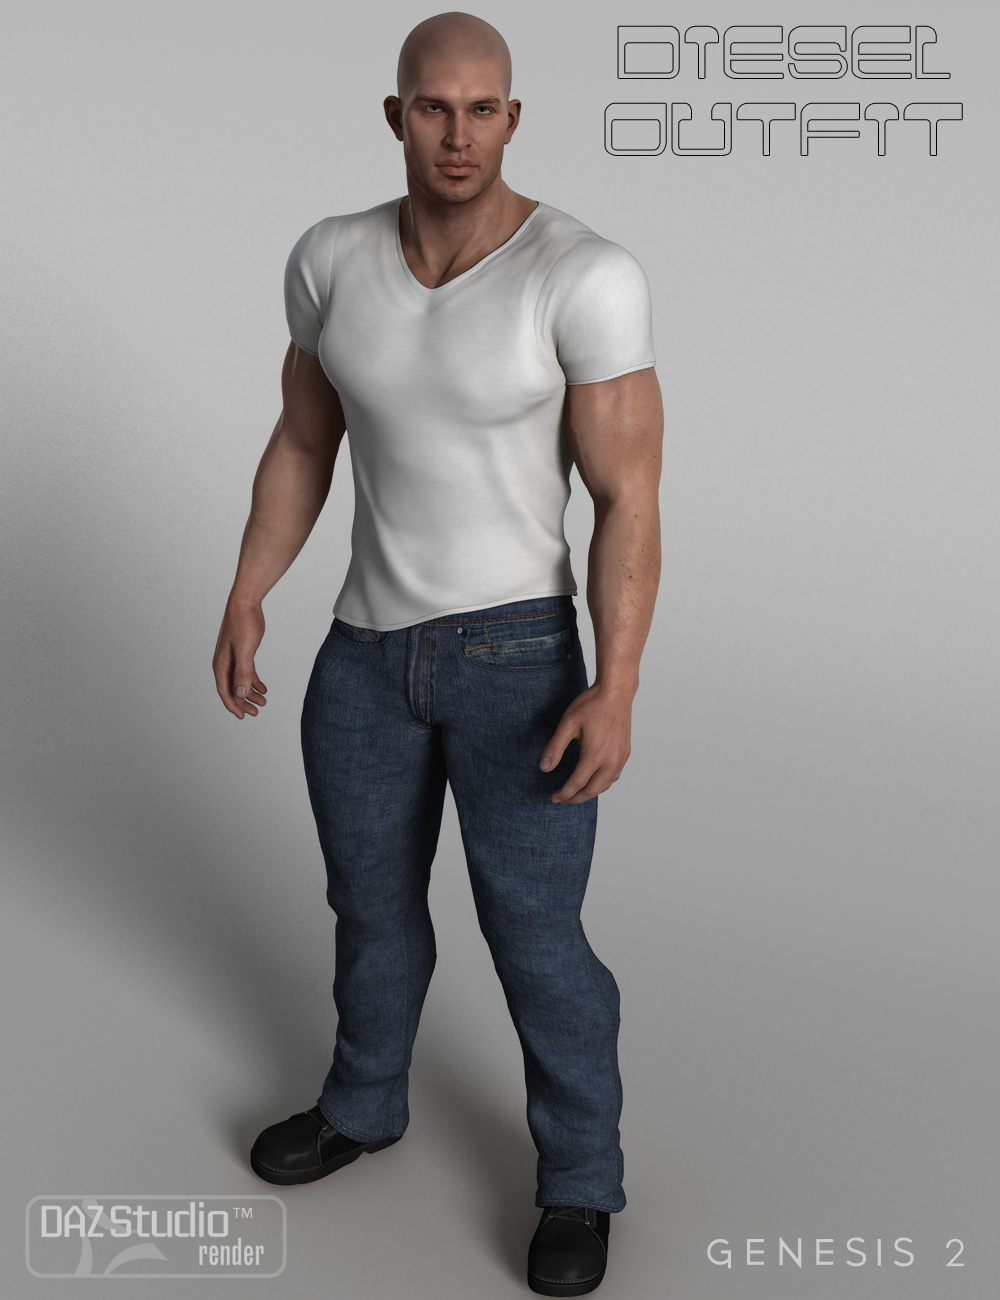 Diesel Outfit for Genesis 2 Male(s) by: Nikisatez, 3D Models by Daz 3D